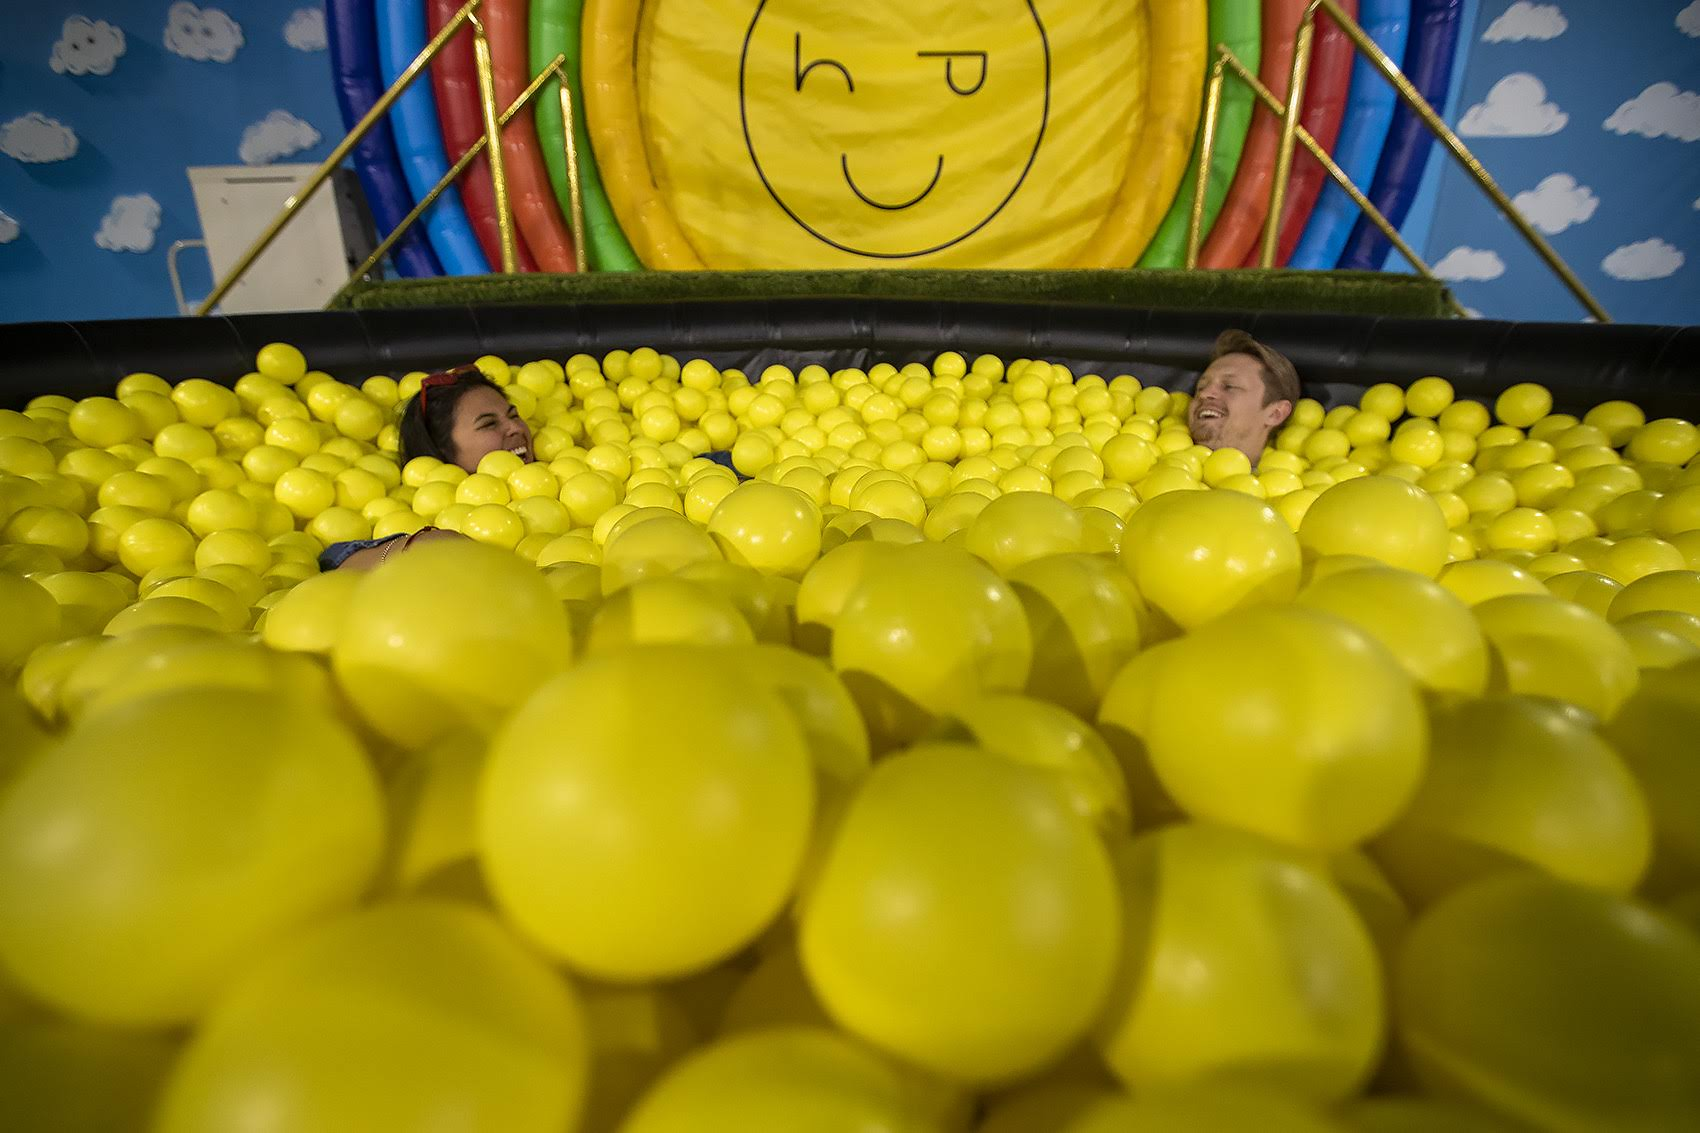 "Madison Munoz and Riley Bates enjoy themselves in the pool of yellow balls at ""Happy Place."" (Jesse Costa/WBUR)"